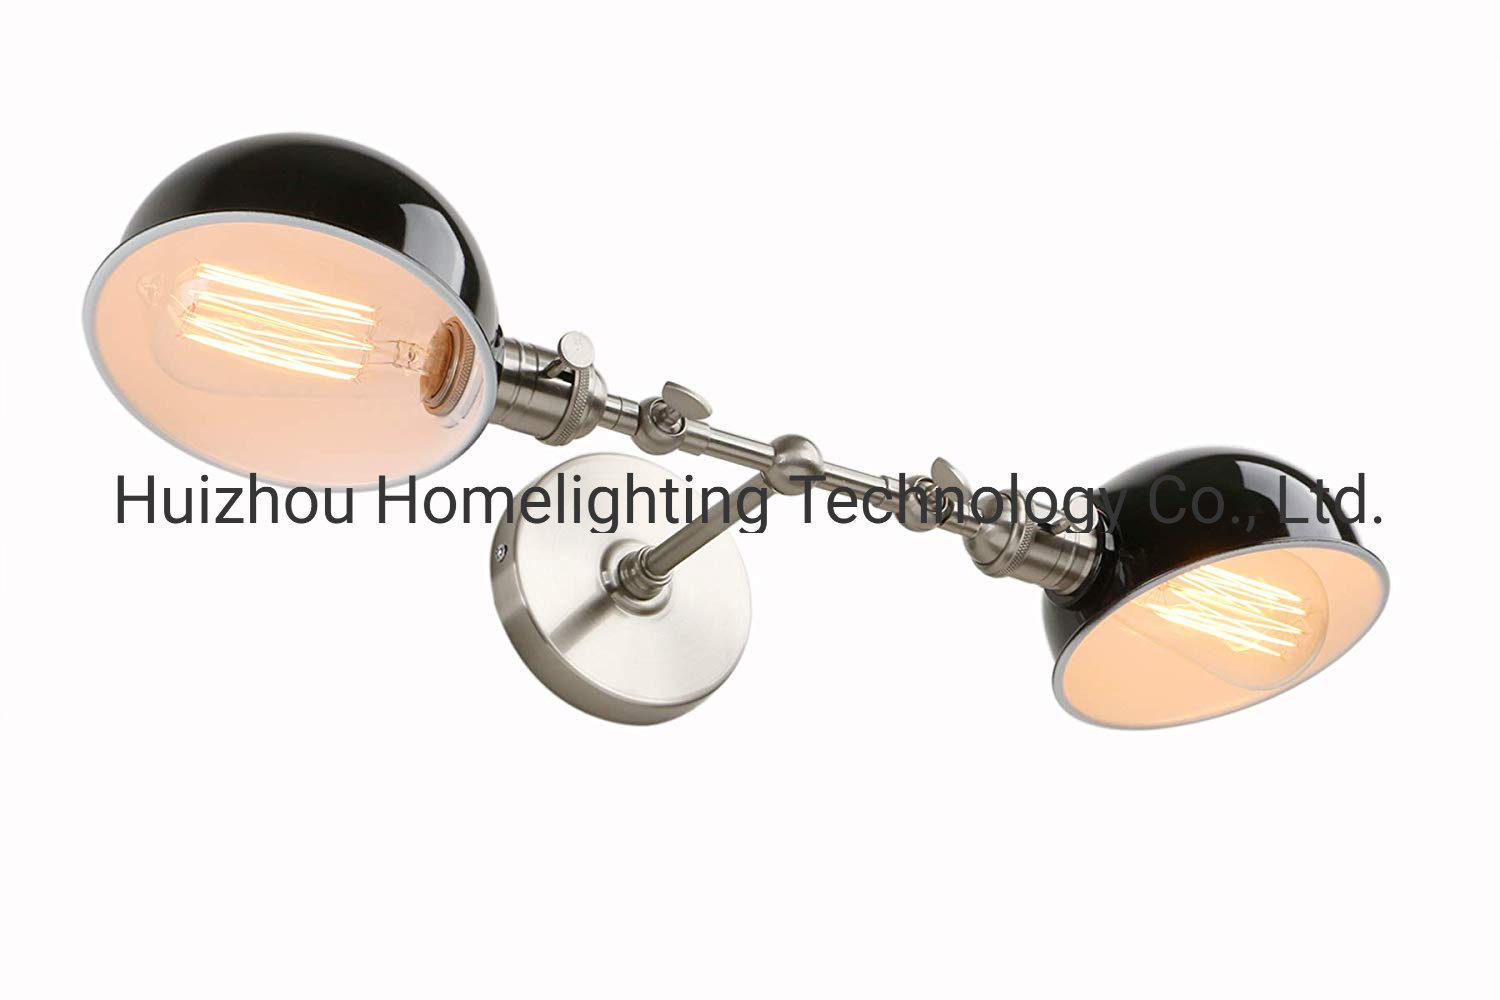 Image of: China Jlw Tl11 Vintage Style Industrial Wall Light 2 Light Wall Sconce China Modern Wall Lamp Double Wall Lamp